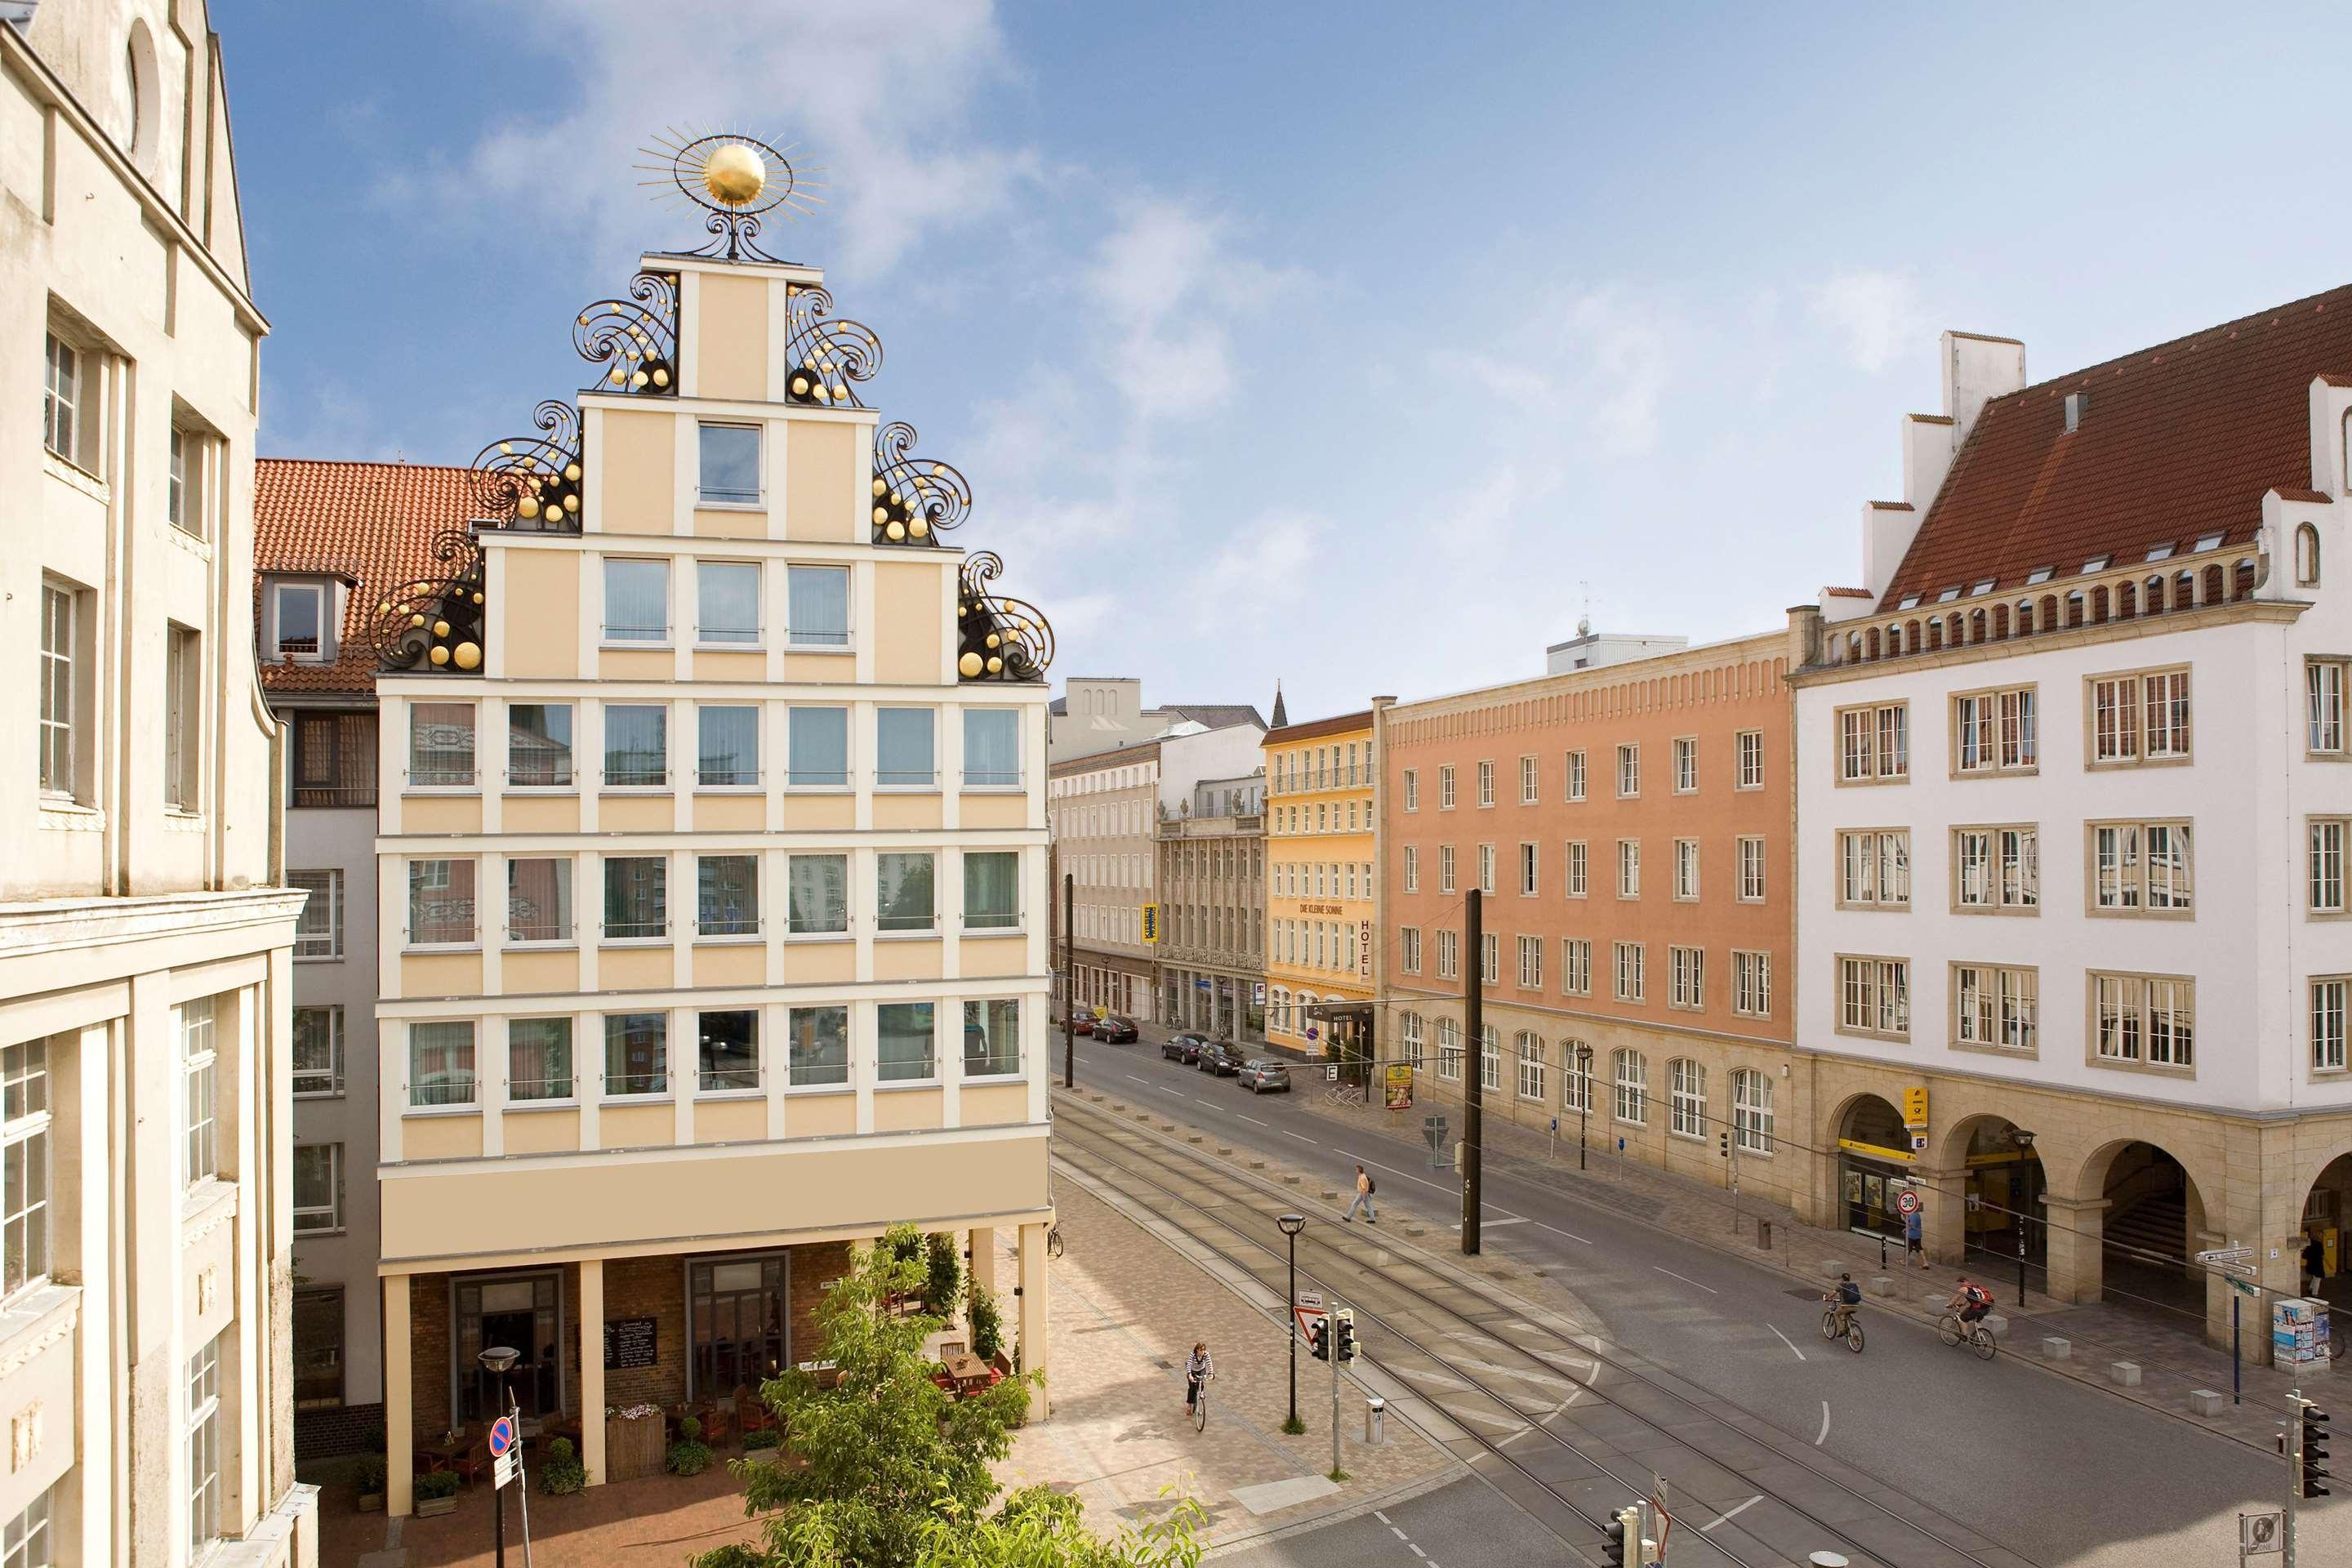 Am Hopfenmarkt Rostock 16 Best Hotels In Rostock. Hotels From $39/night - Kayak